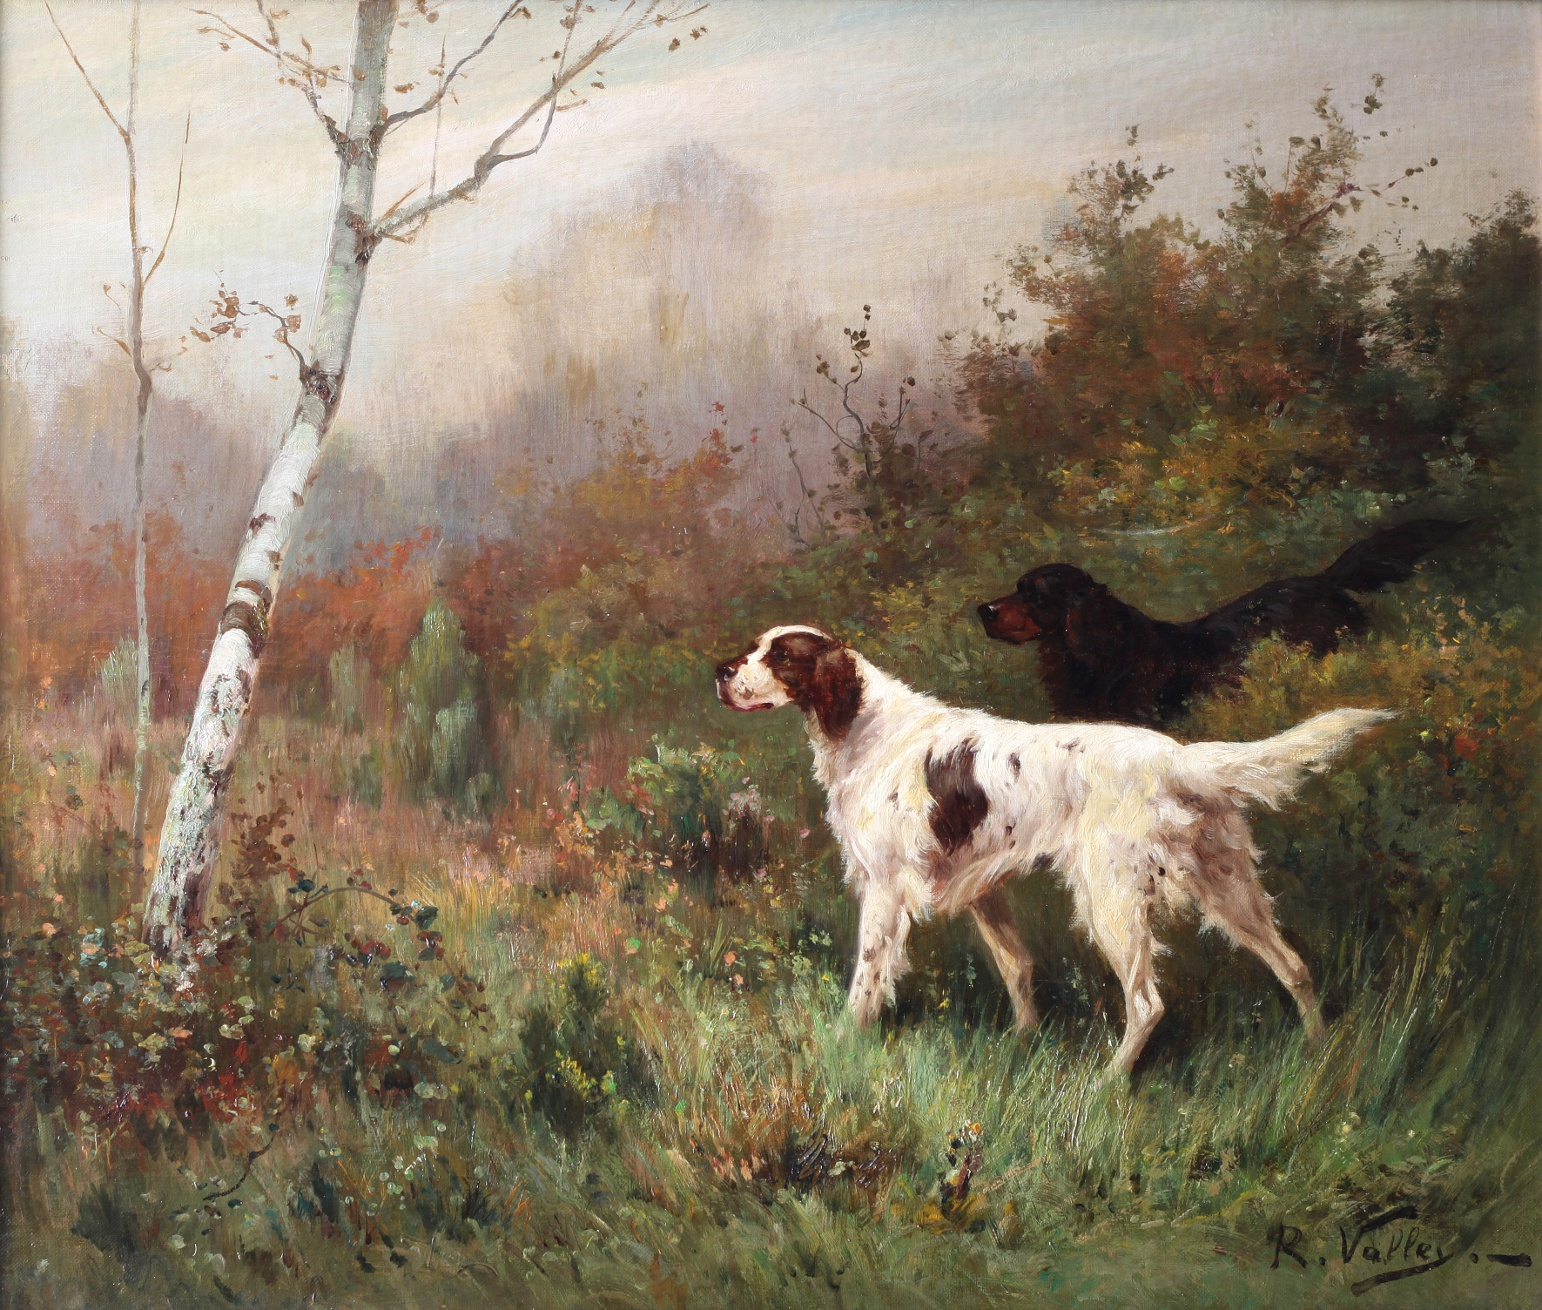 Click to see full size: Oil on canvas of English Setter and Gordon Setter by R Vallet